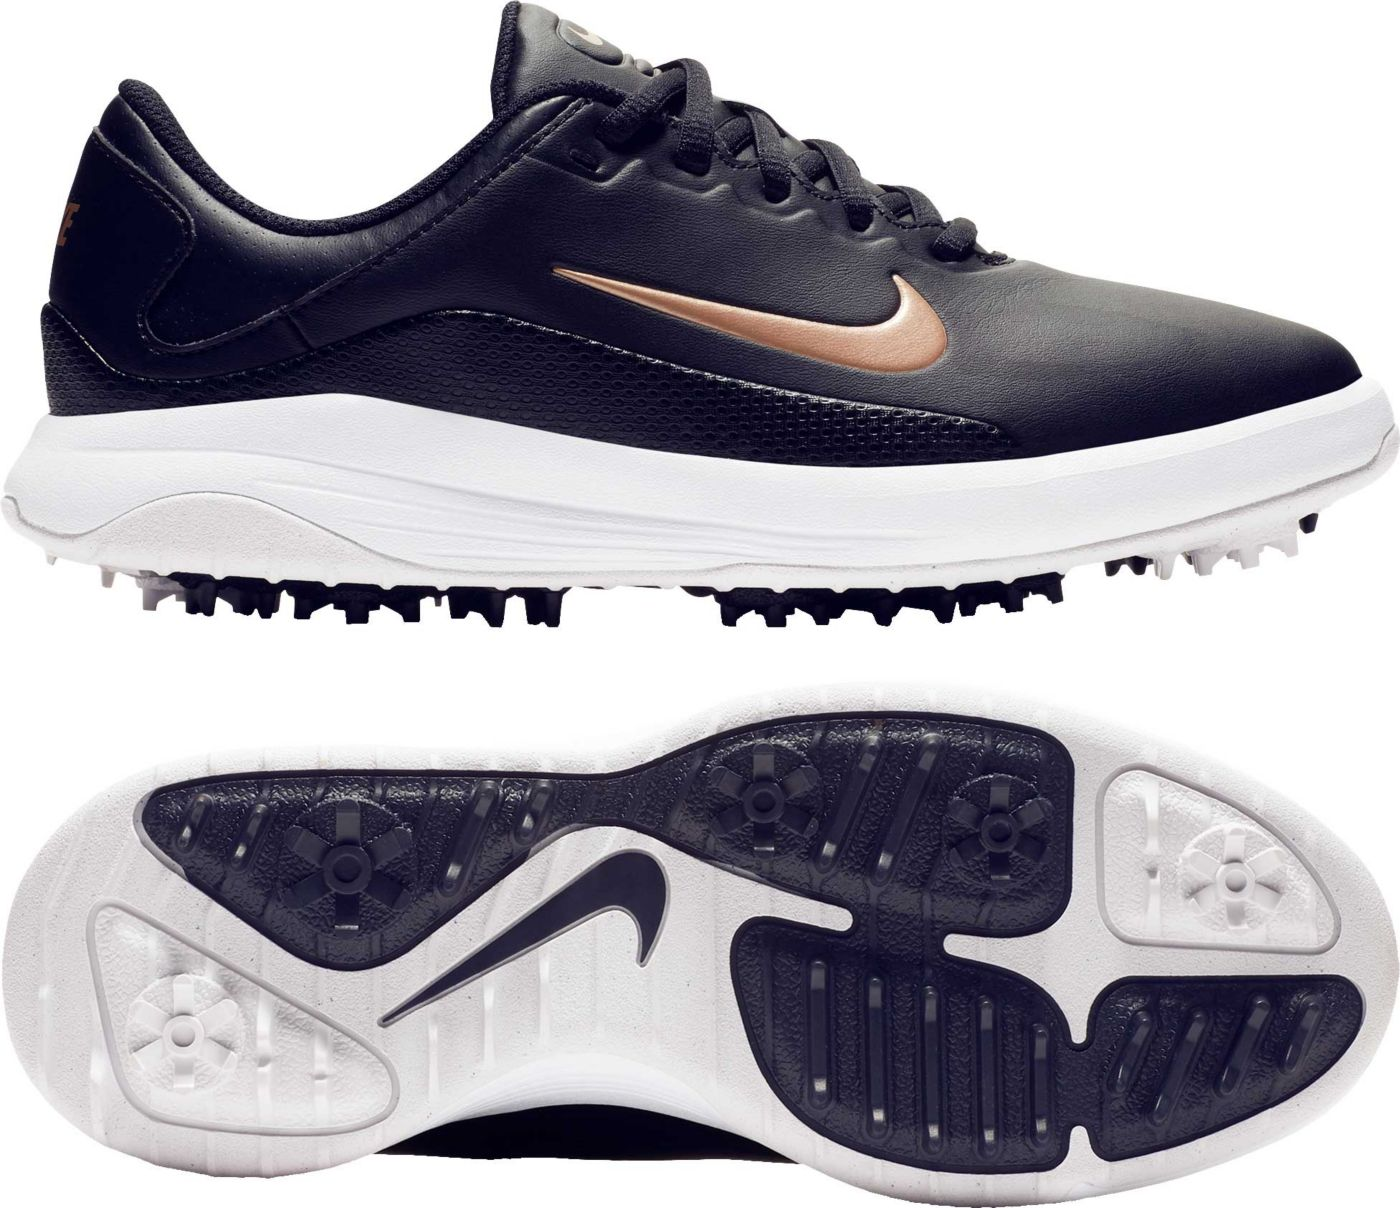 Nike Women's Vapor Golf Shoes